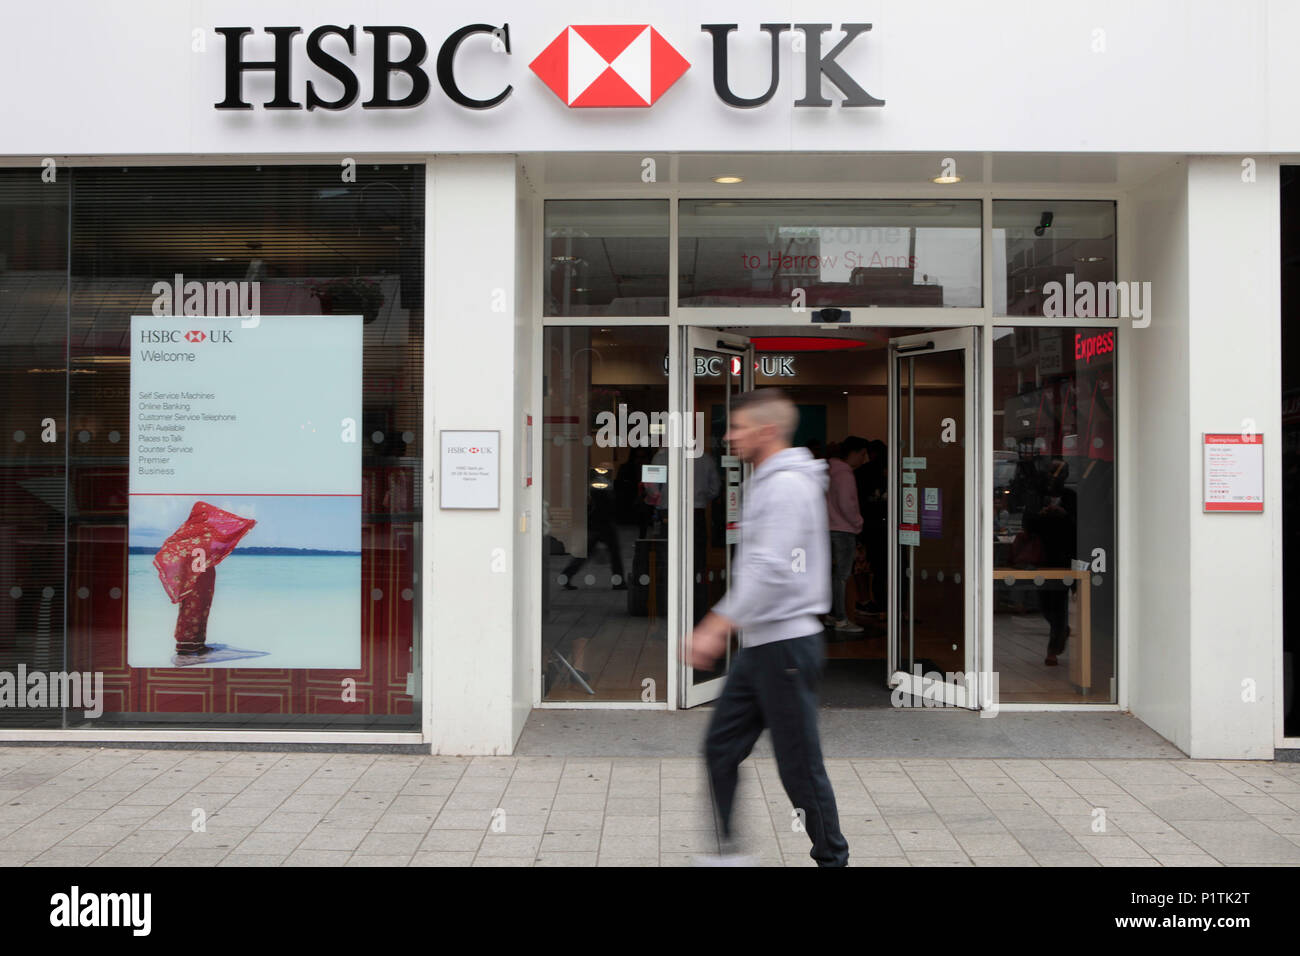 HSBC BANK. Shops and people shopping in Harrow, middlesex, London, UK - Stock Image